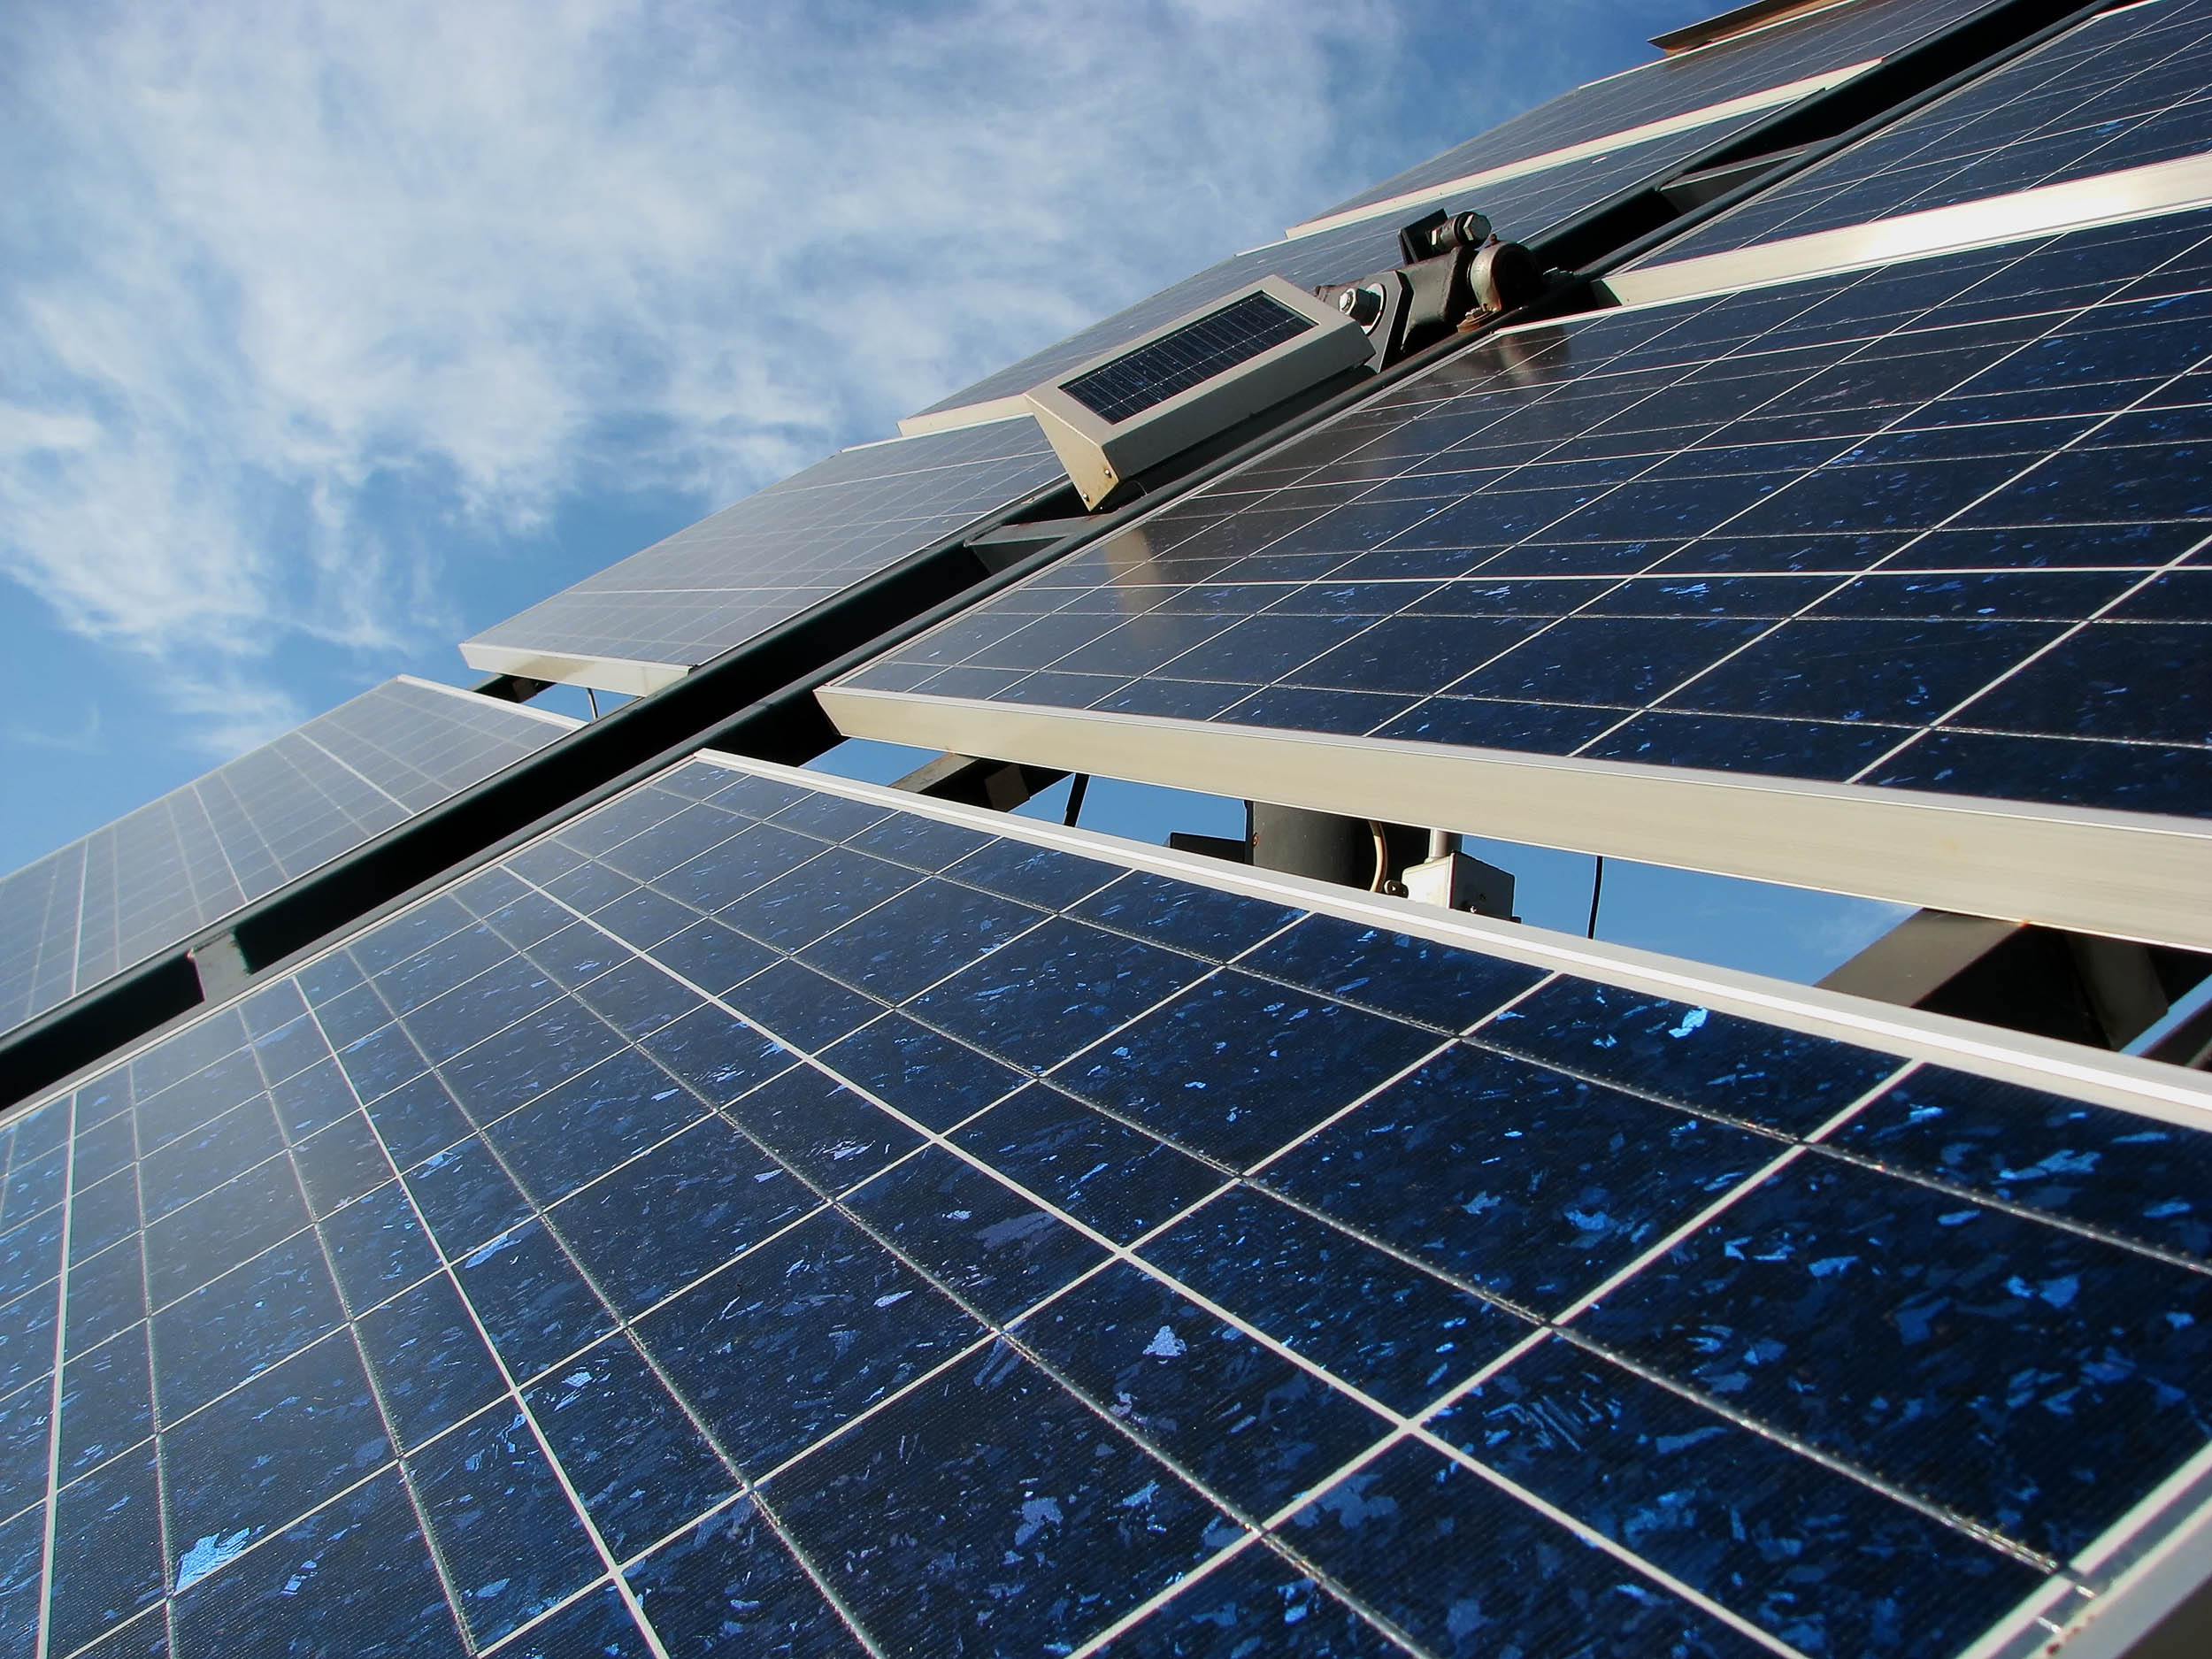 What s the best placement of solar panels clean energy ideas